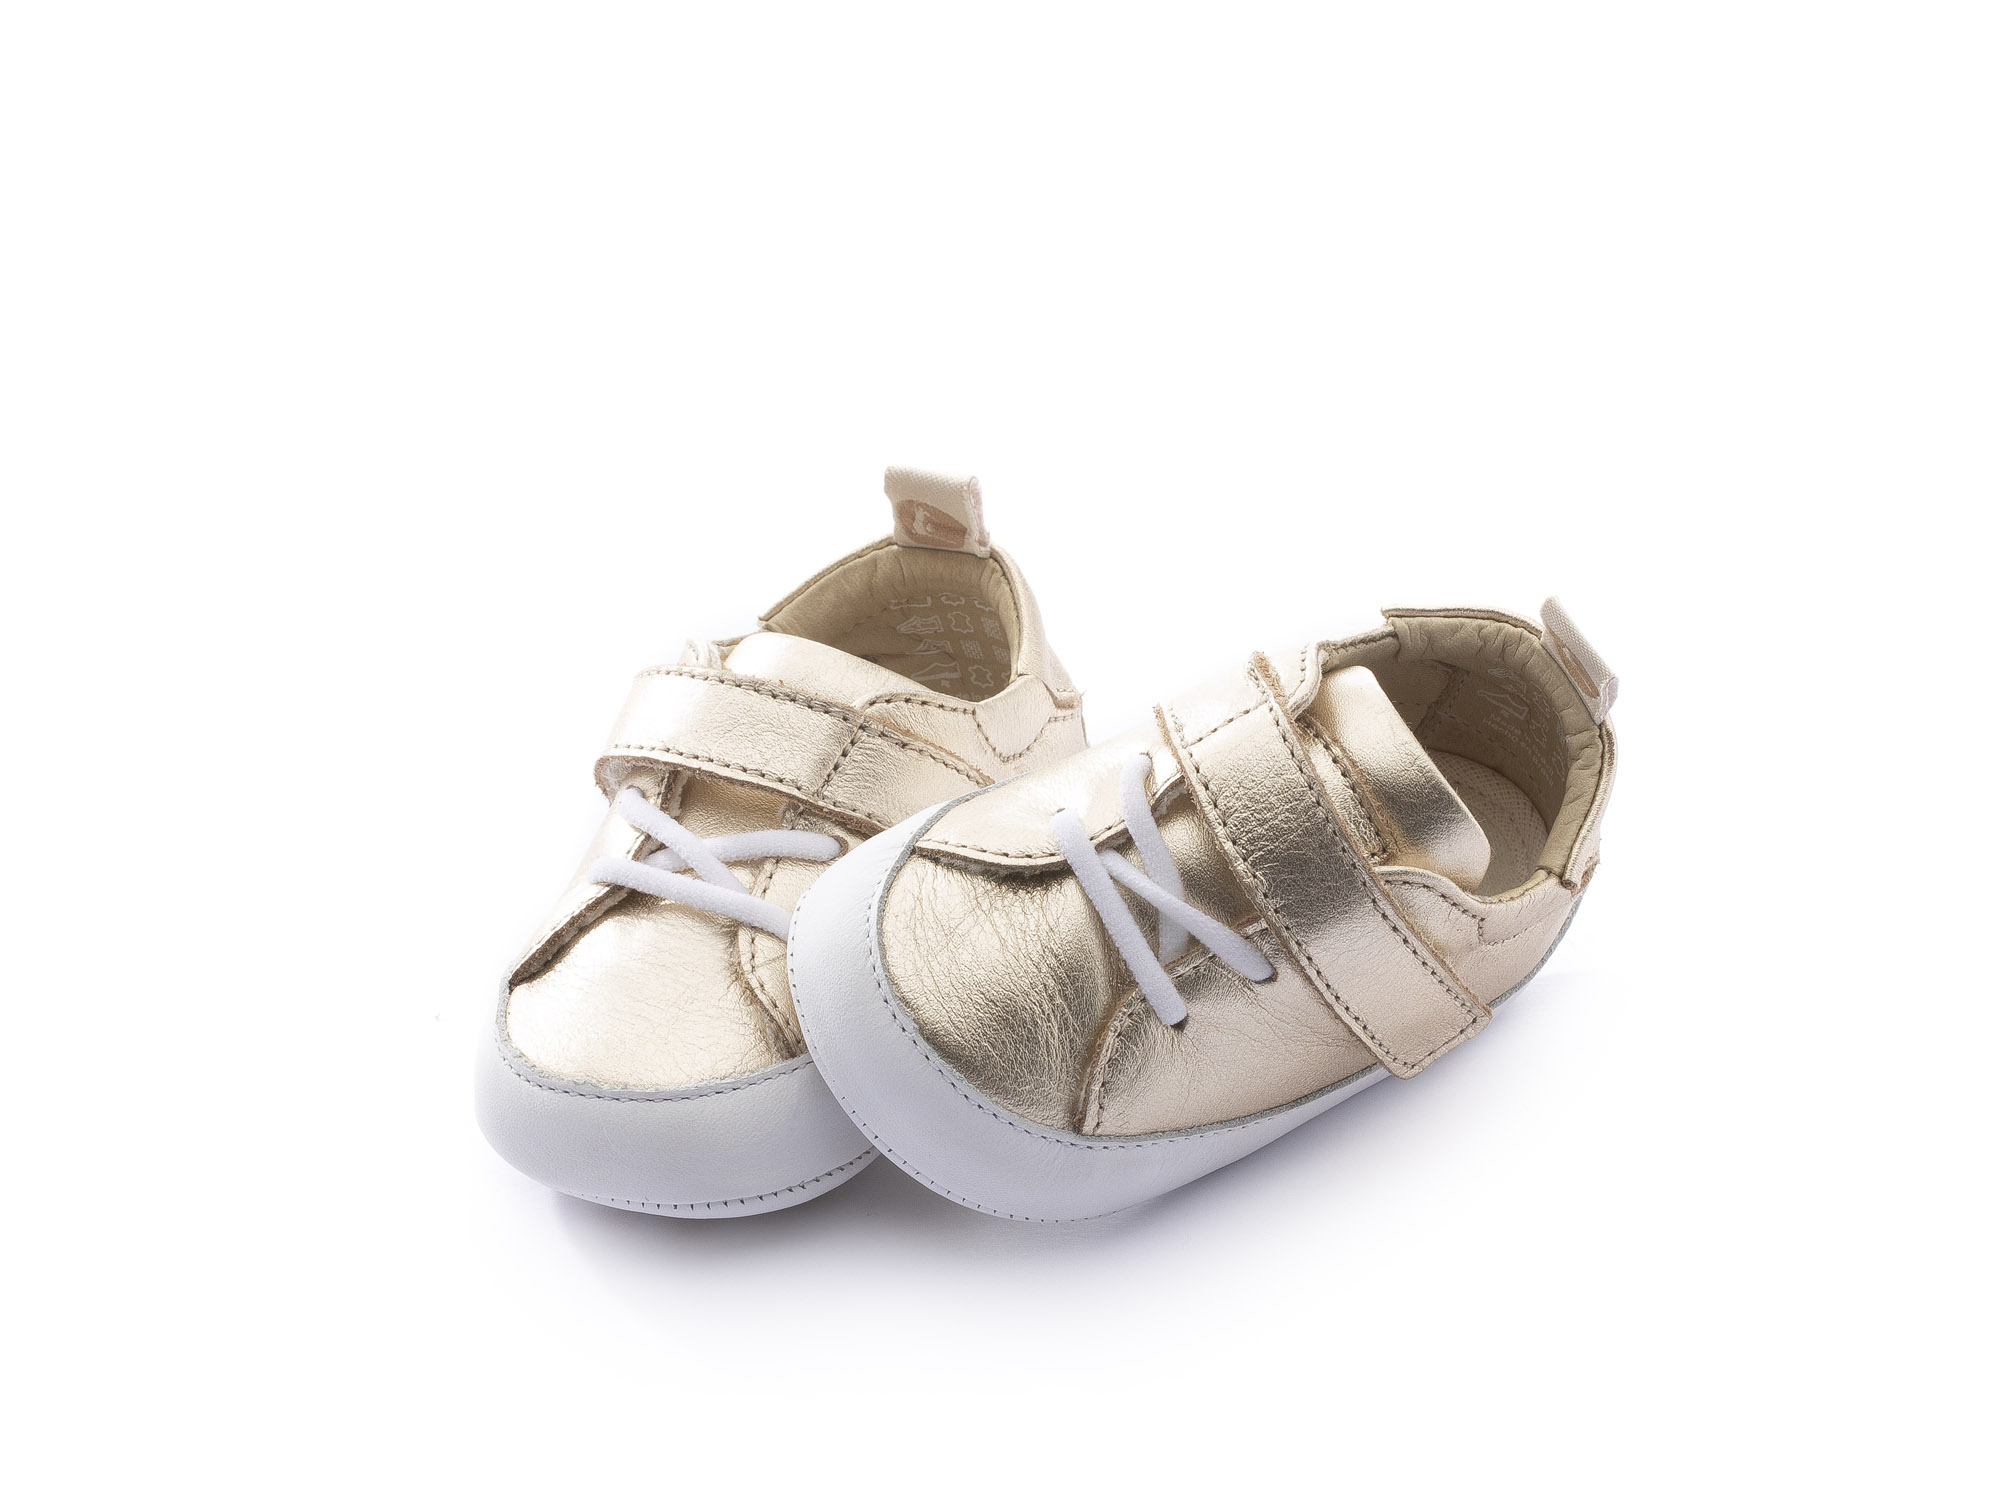 Sneaker Casual Light Champagne  Baby 0 à 2 anos - 1